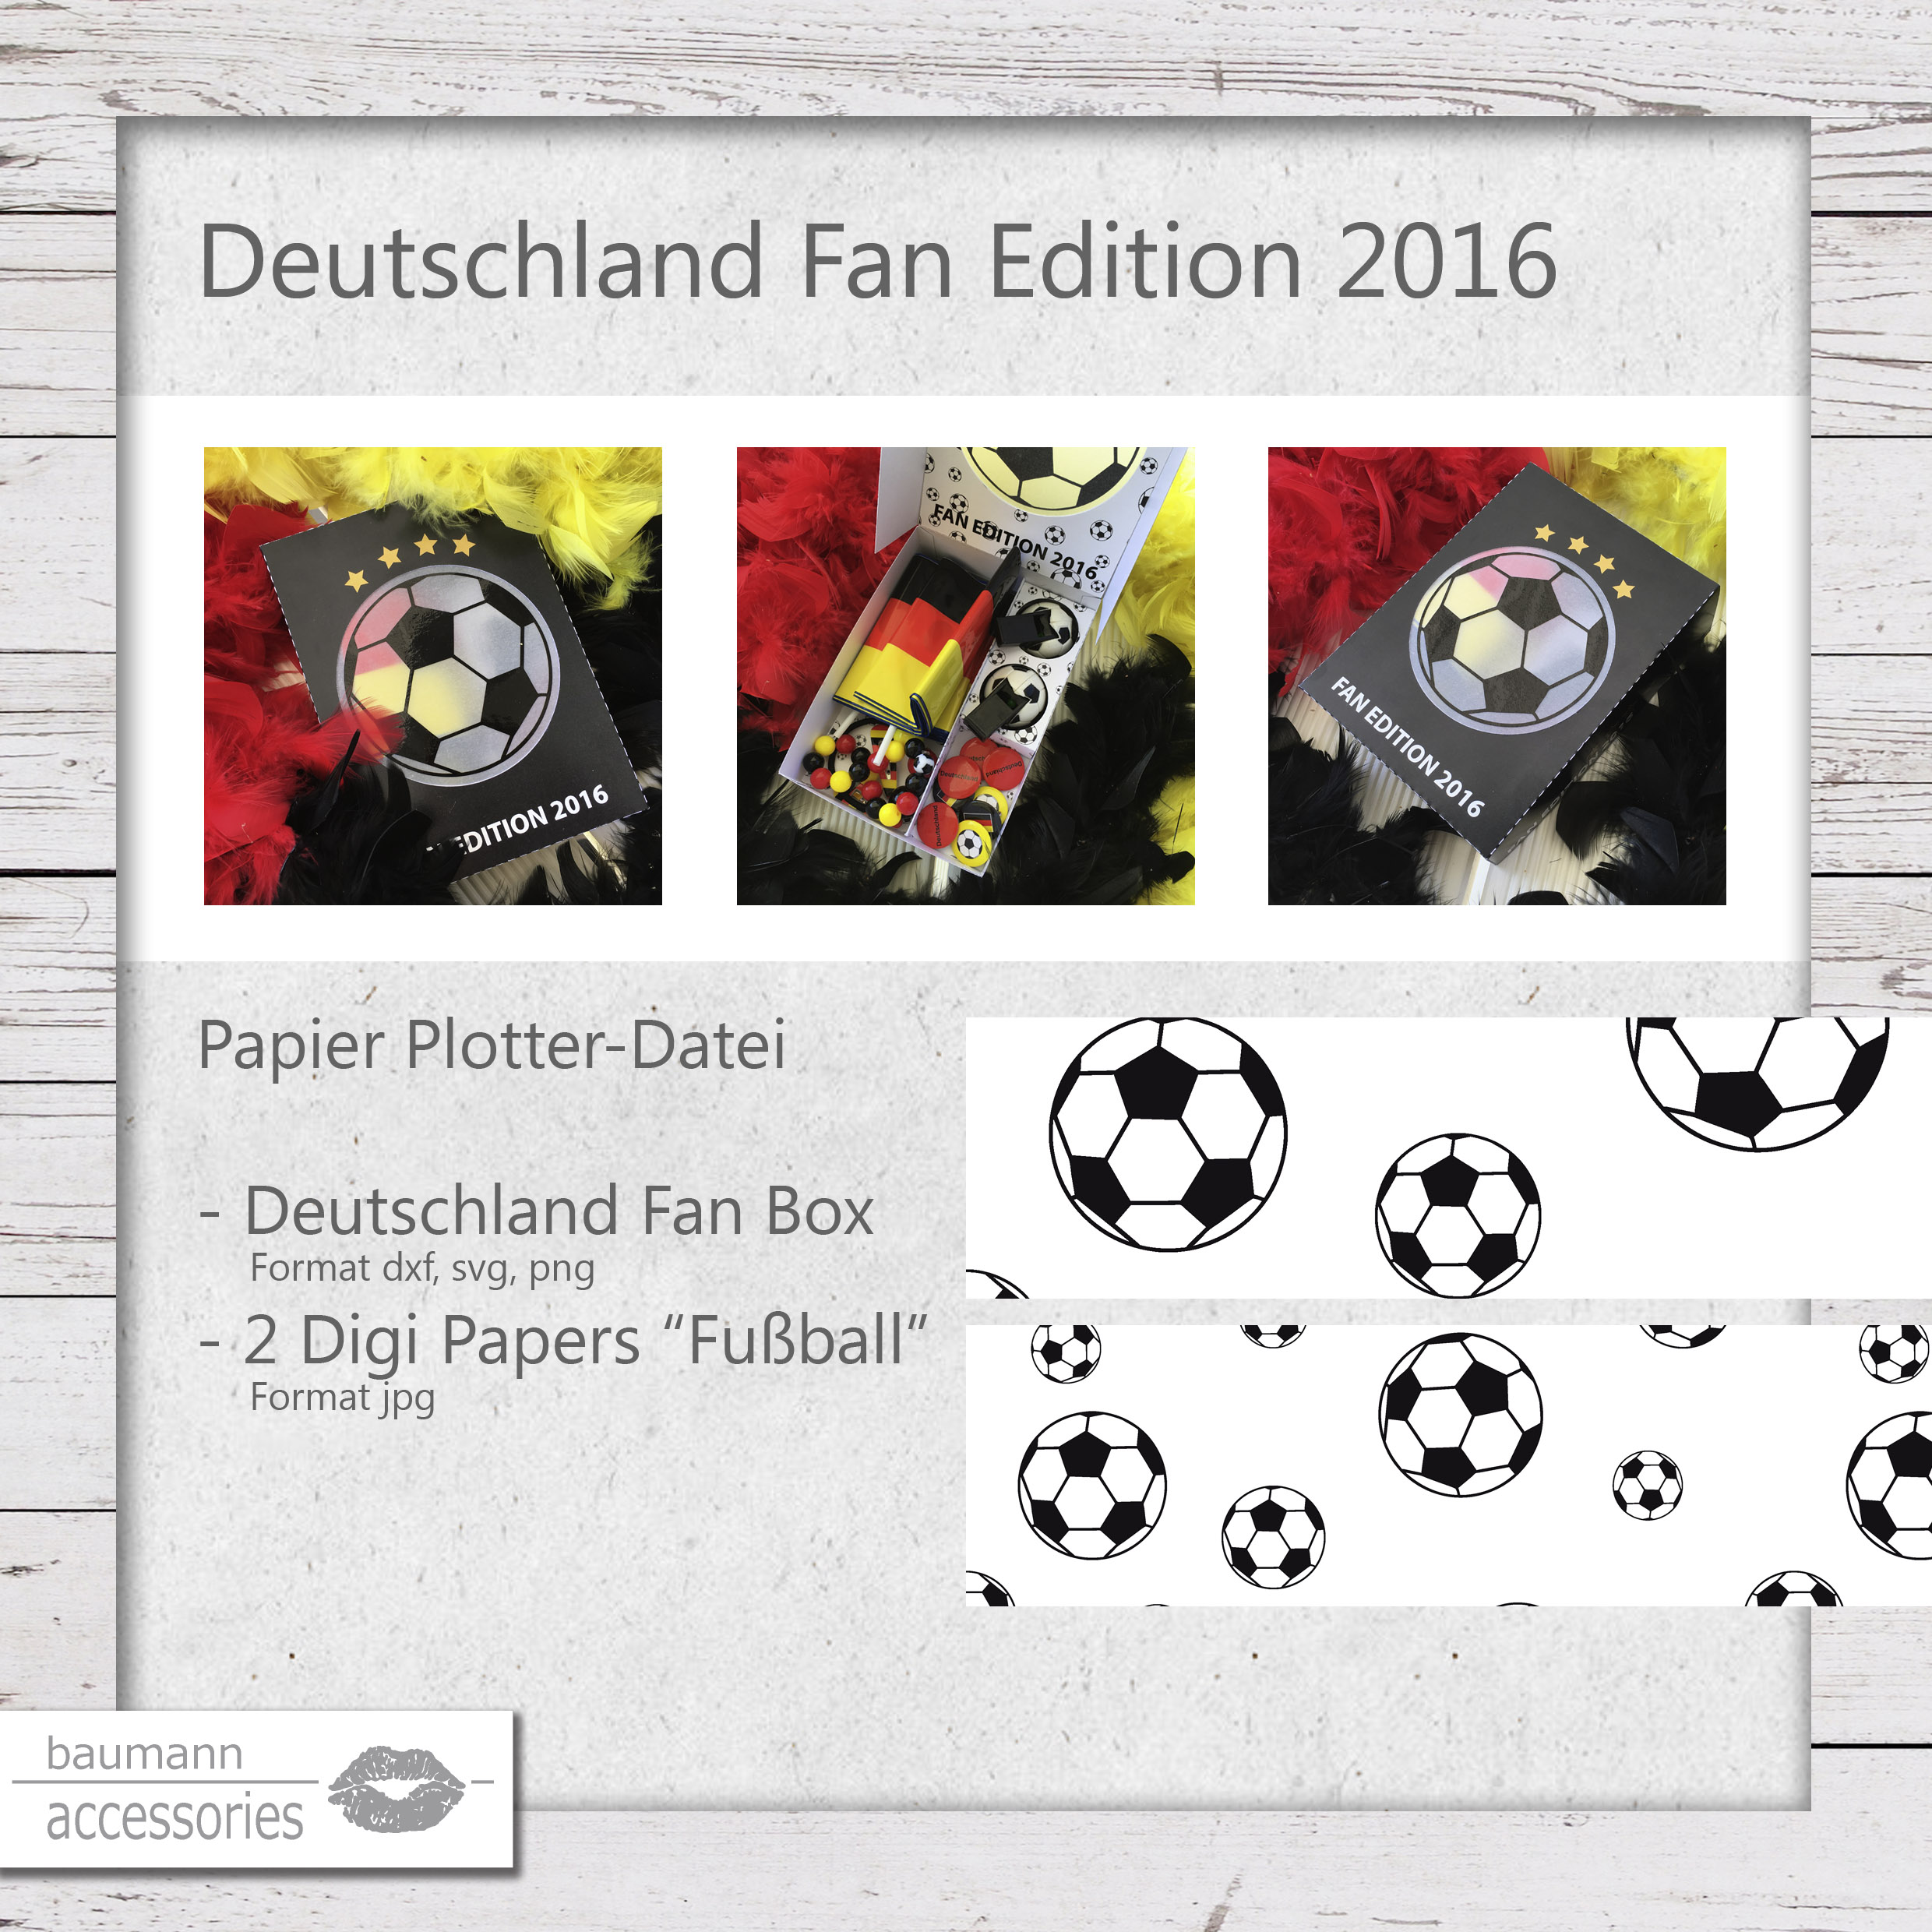 Produkt Deutschland Fan Edition